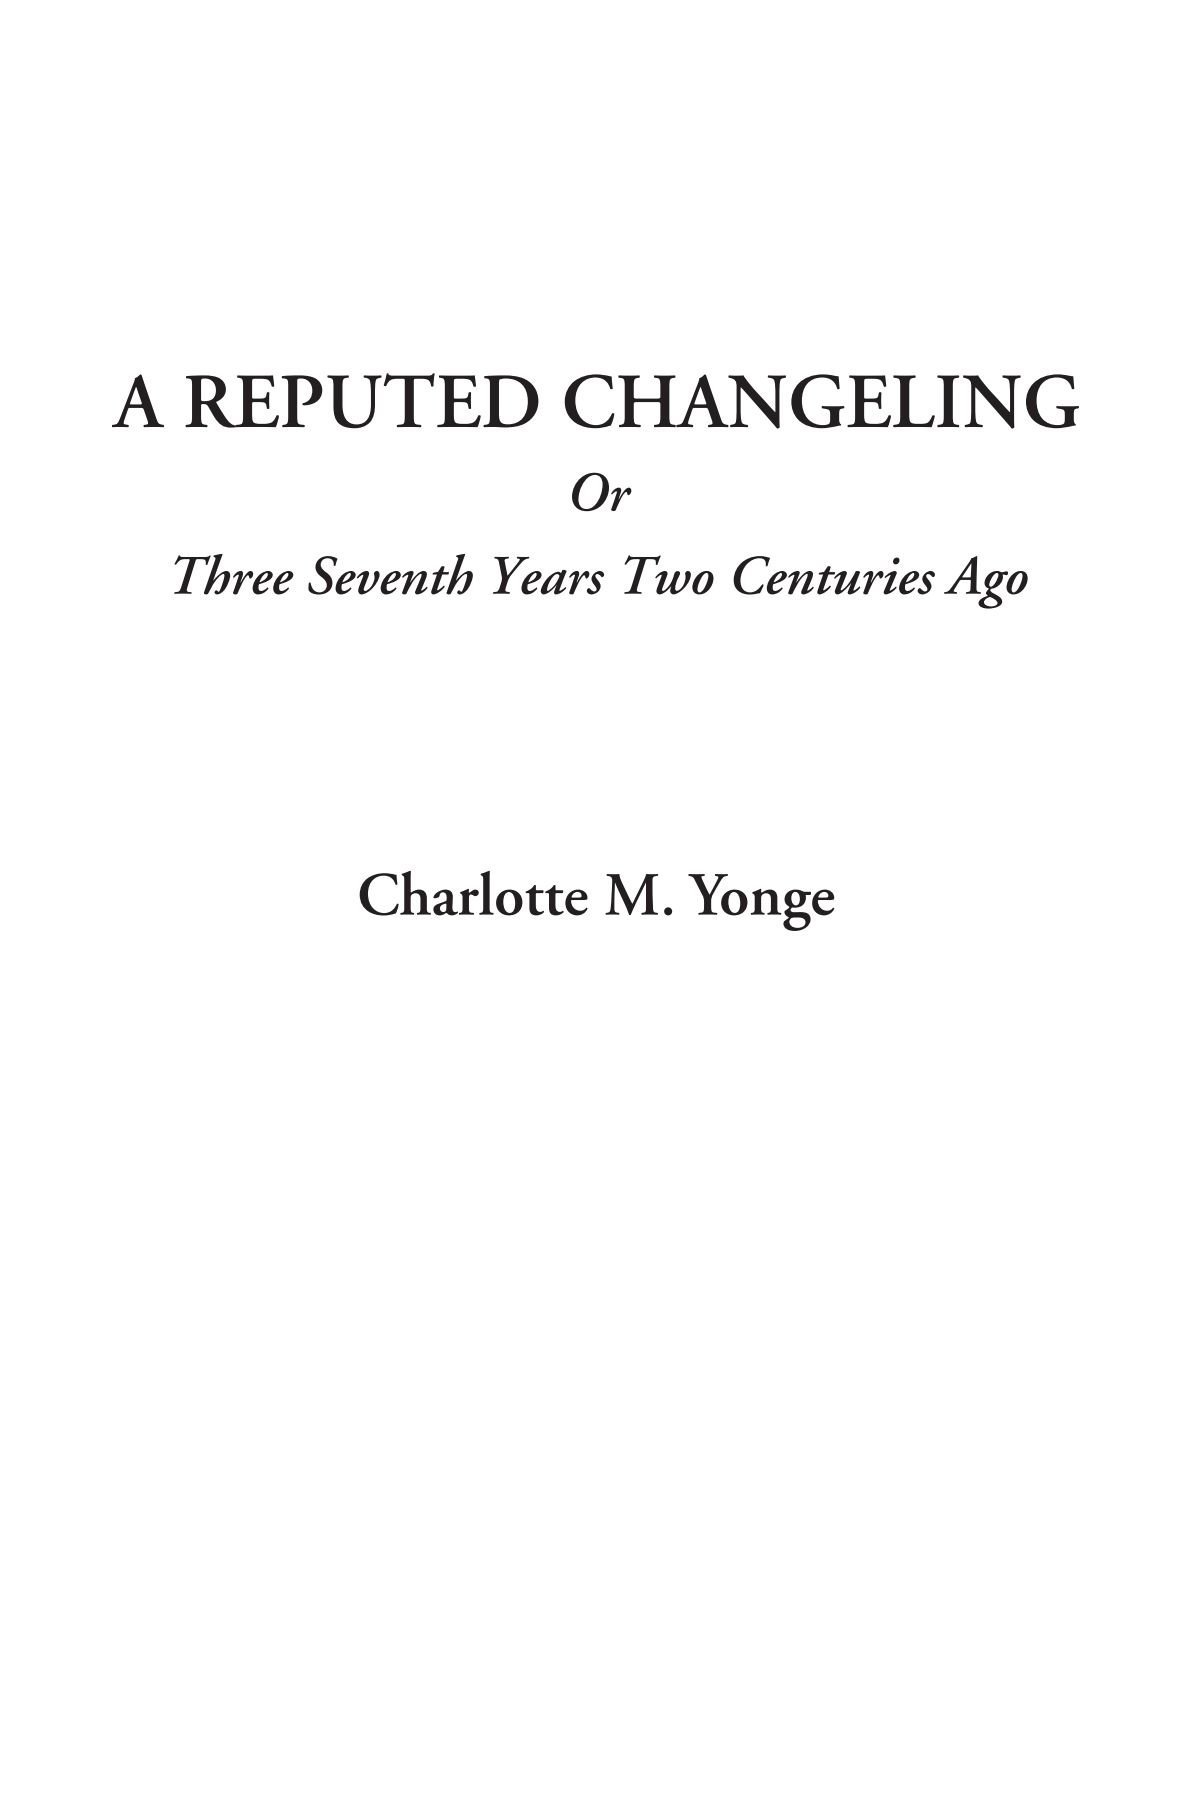 Read Online A Reputed Changeling Or Three Seventh Years Two Centuries Ago pdf epub